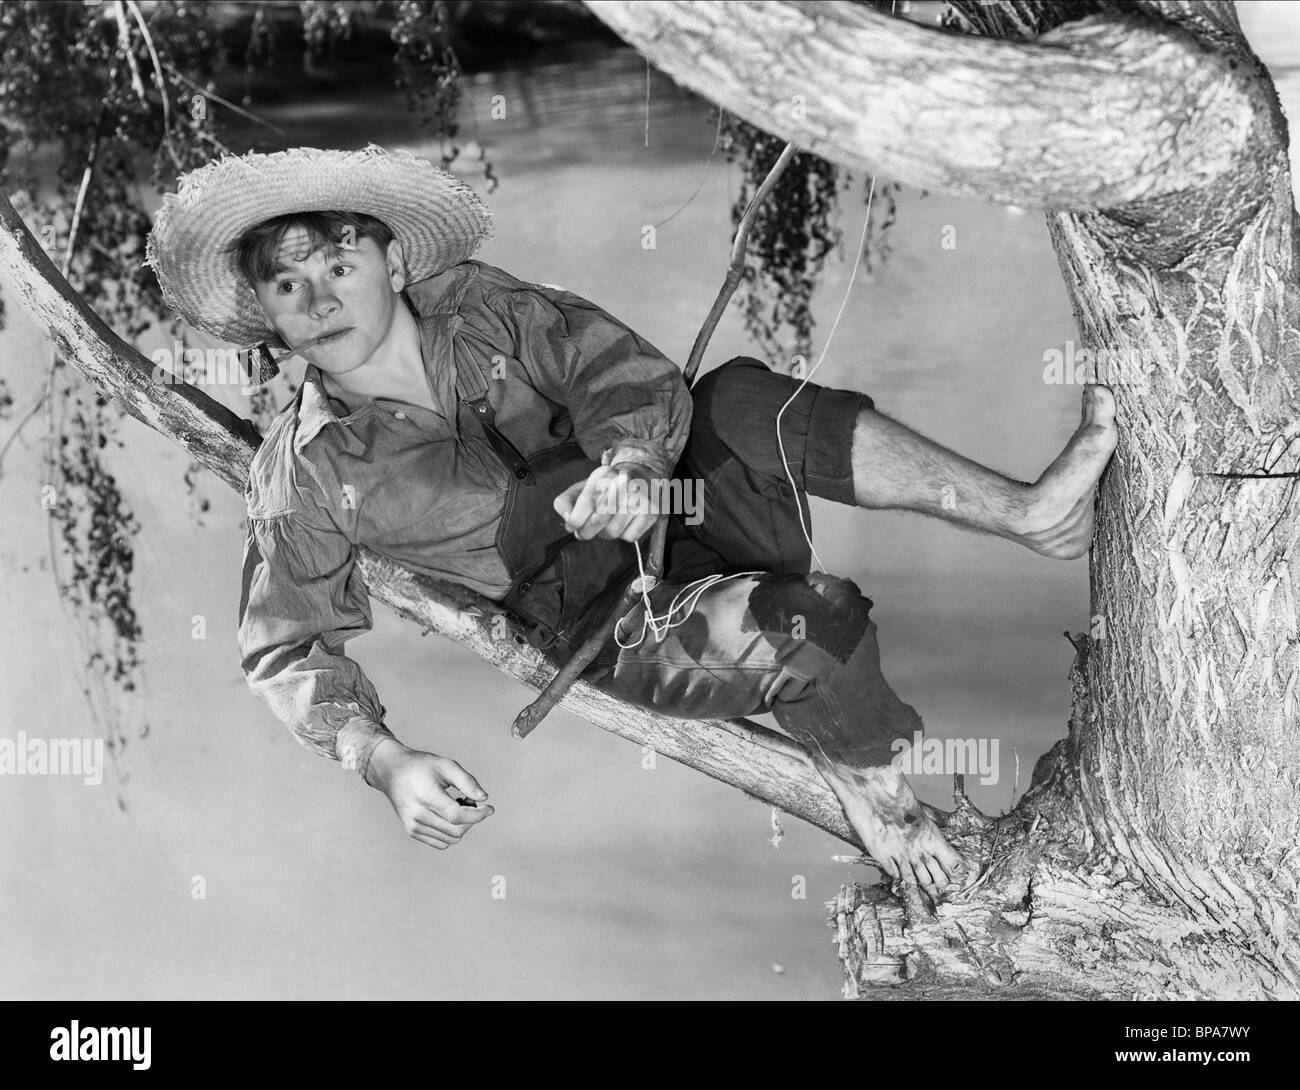 MICKEY ROONEY THE ADVENTURES OF HUCKLEBERRY FINN (1939 Stock Photo, Royalty Free Image: 30958535 ...